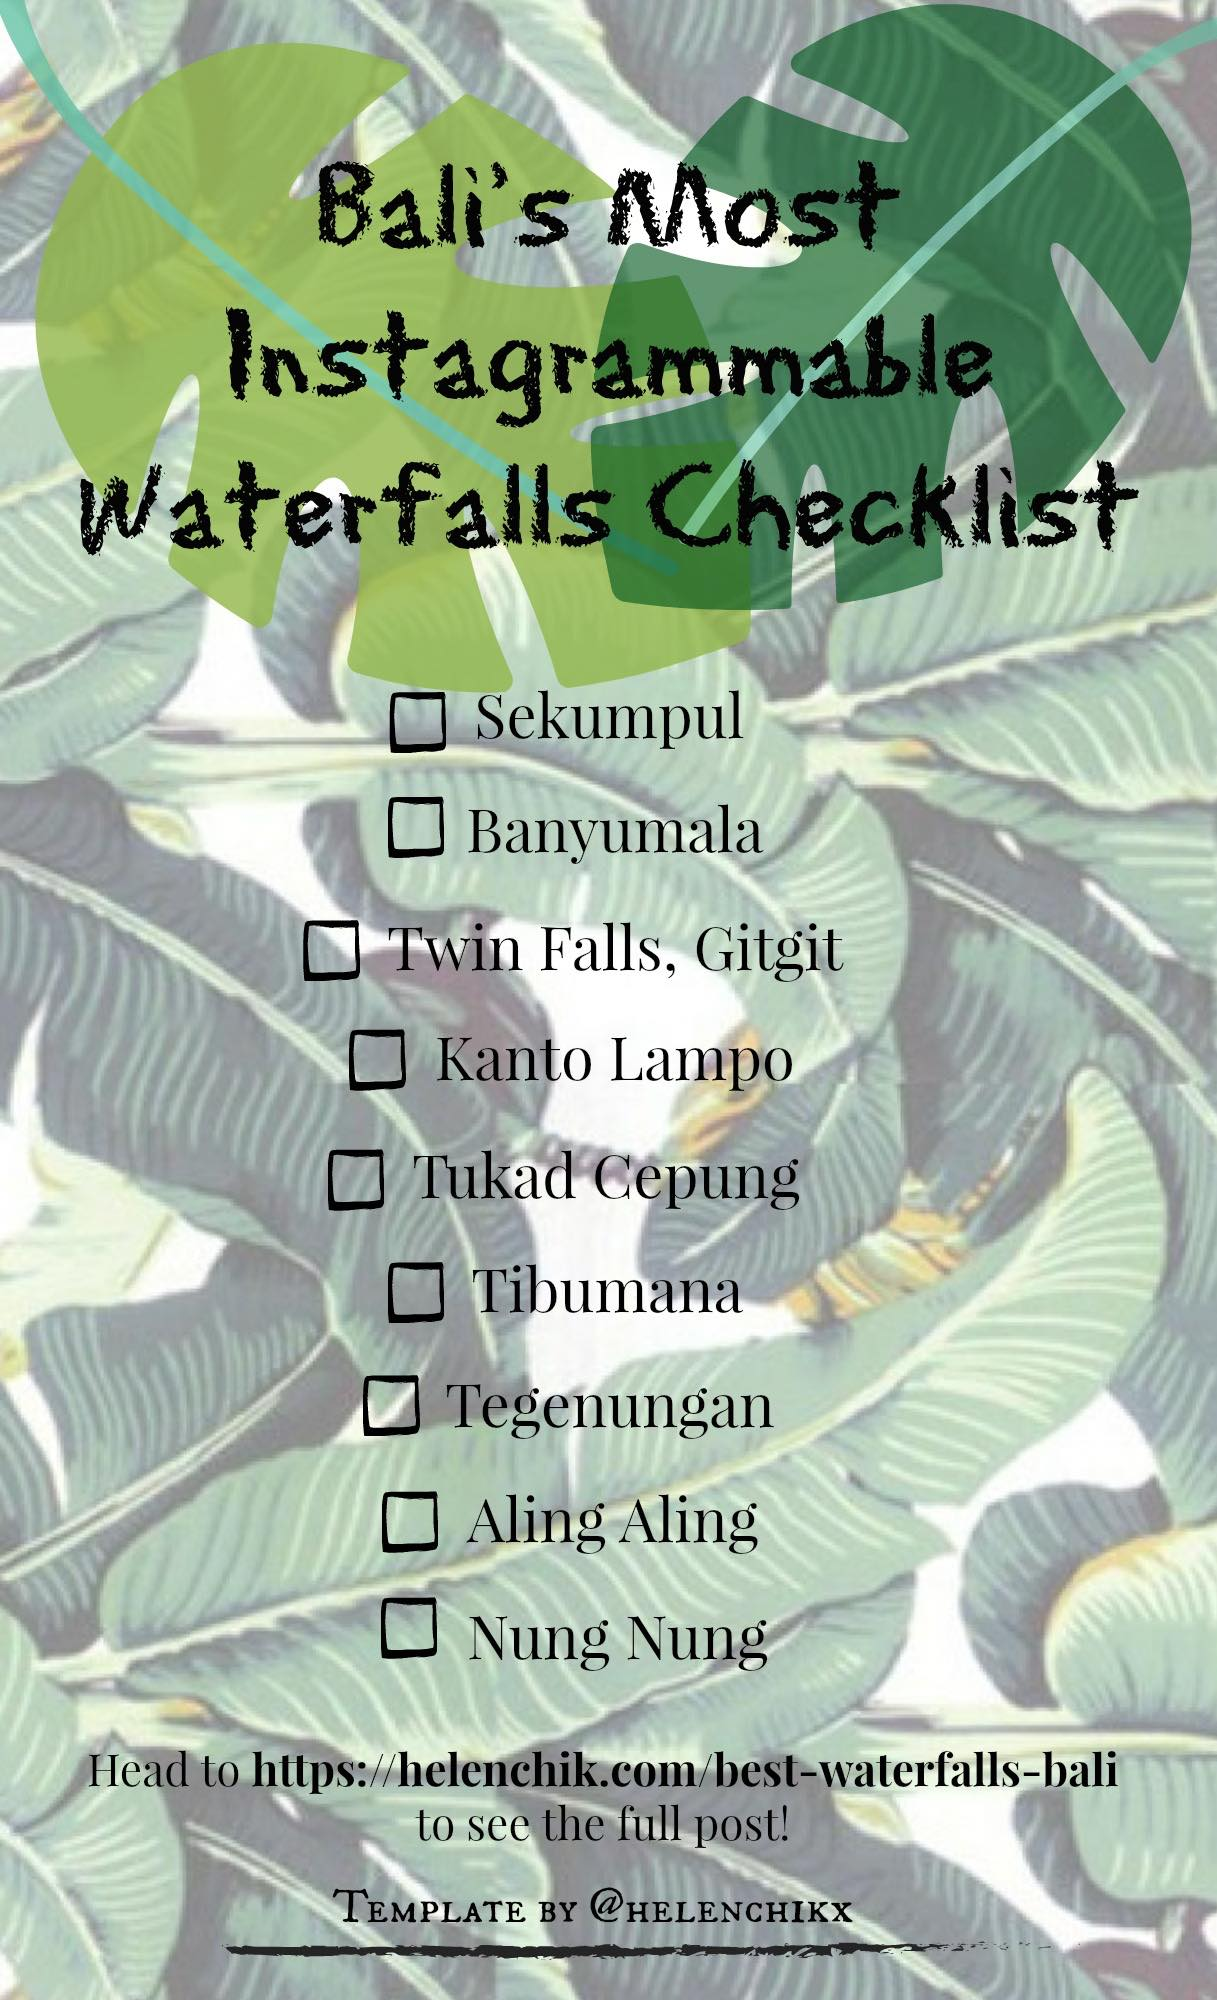 Bali's Most Instagrammable Waterfalls Checklist